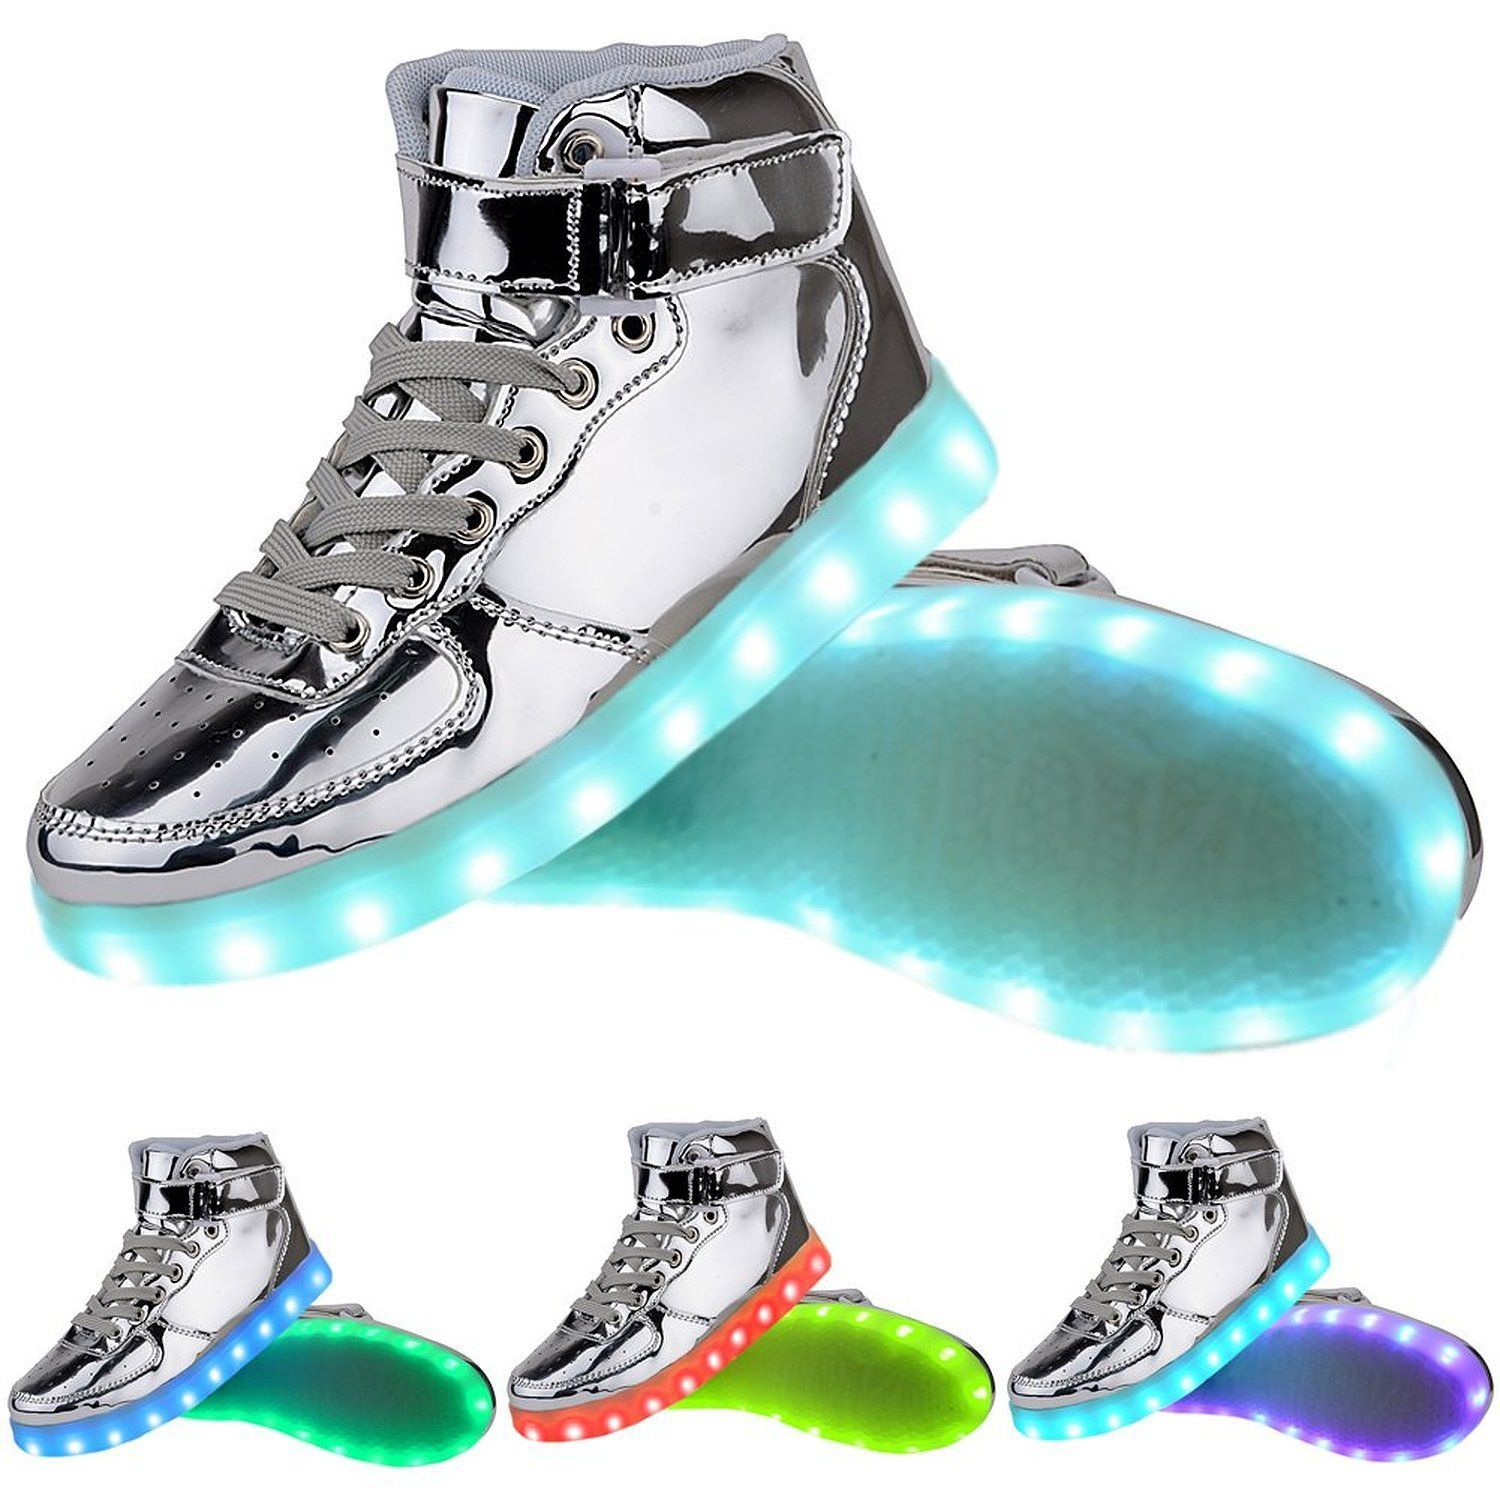 TUTUYU Kids&Adult 11 Colors LED Light Up Shoes High Top Fashion Flashing  Sneakers Silver Size Table: brfoot length length length length length  length length ...